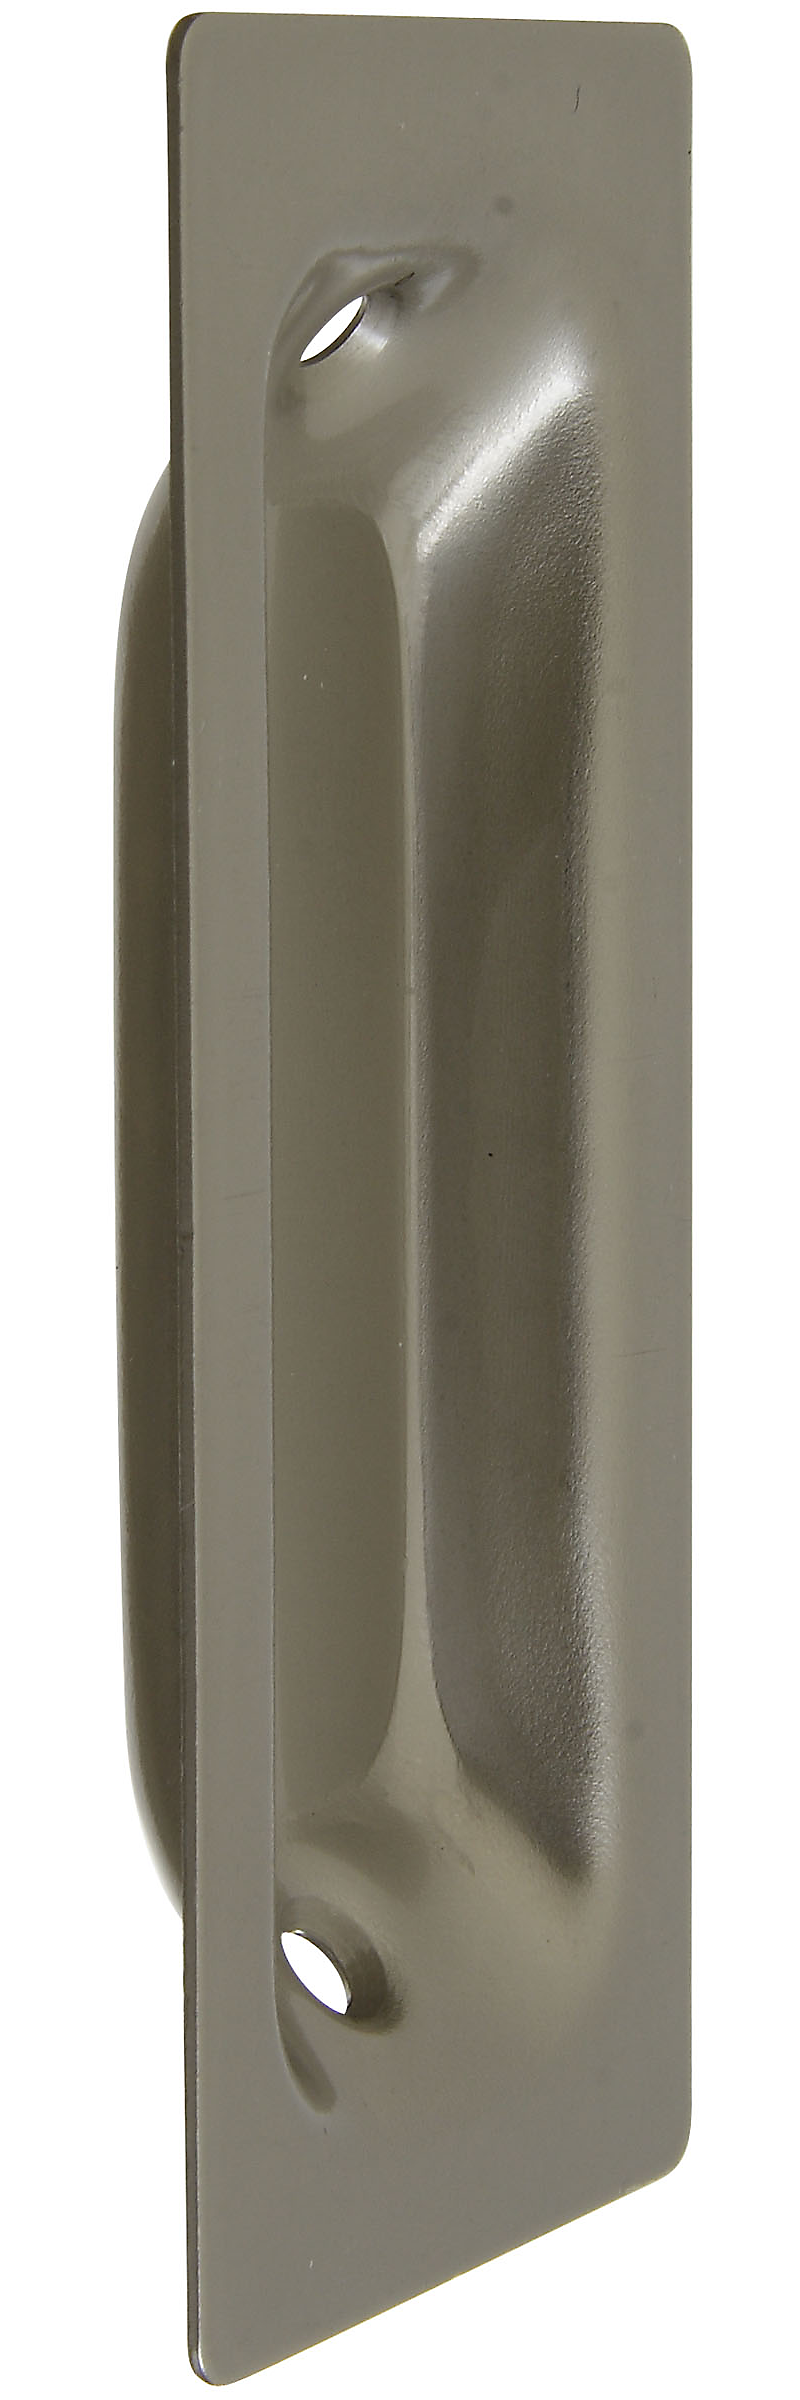 Primary Product Image for Flush Pull